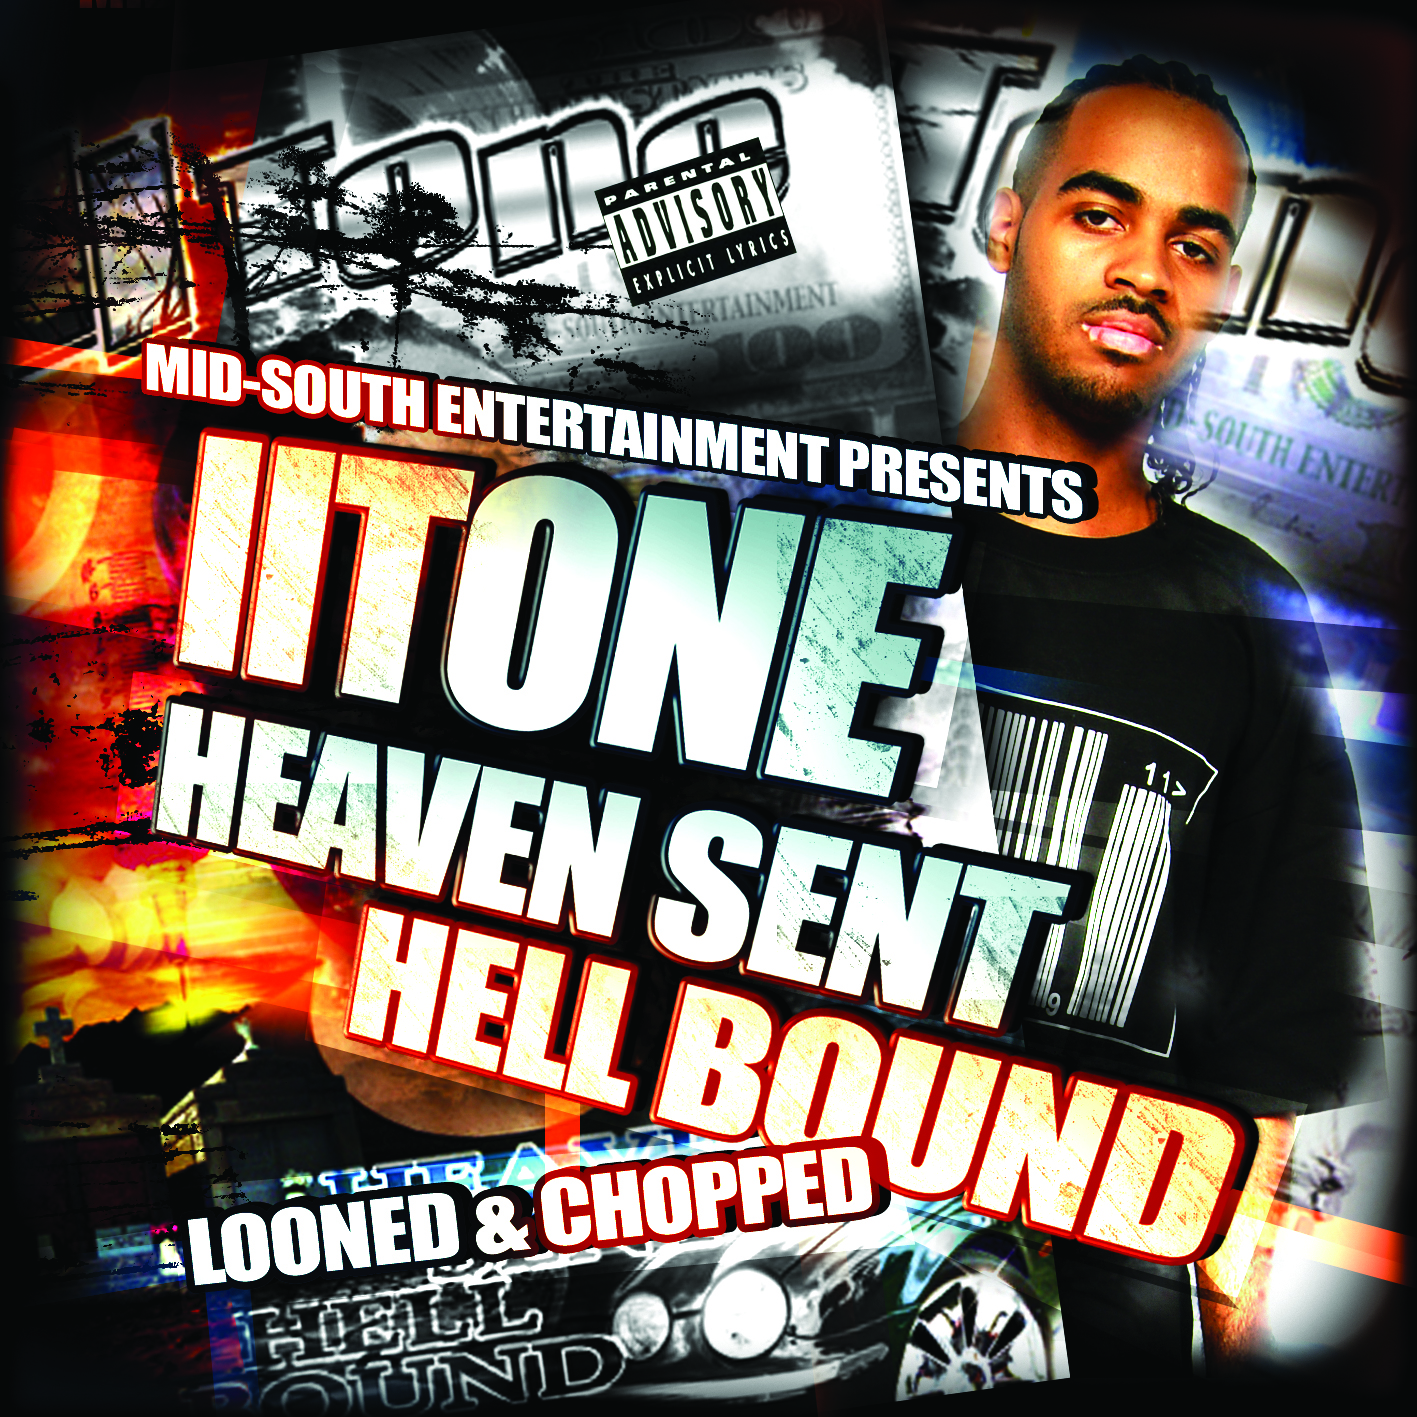 II Tone - Heaven Sent Hell Bound (Looned & Chopped)